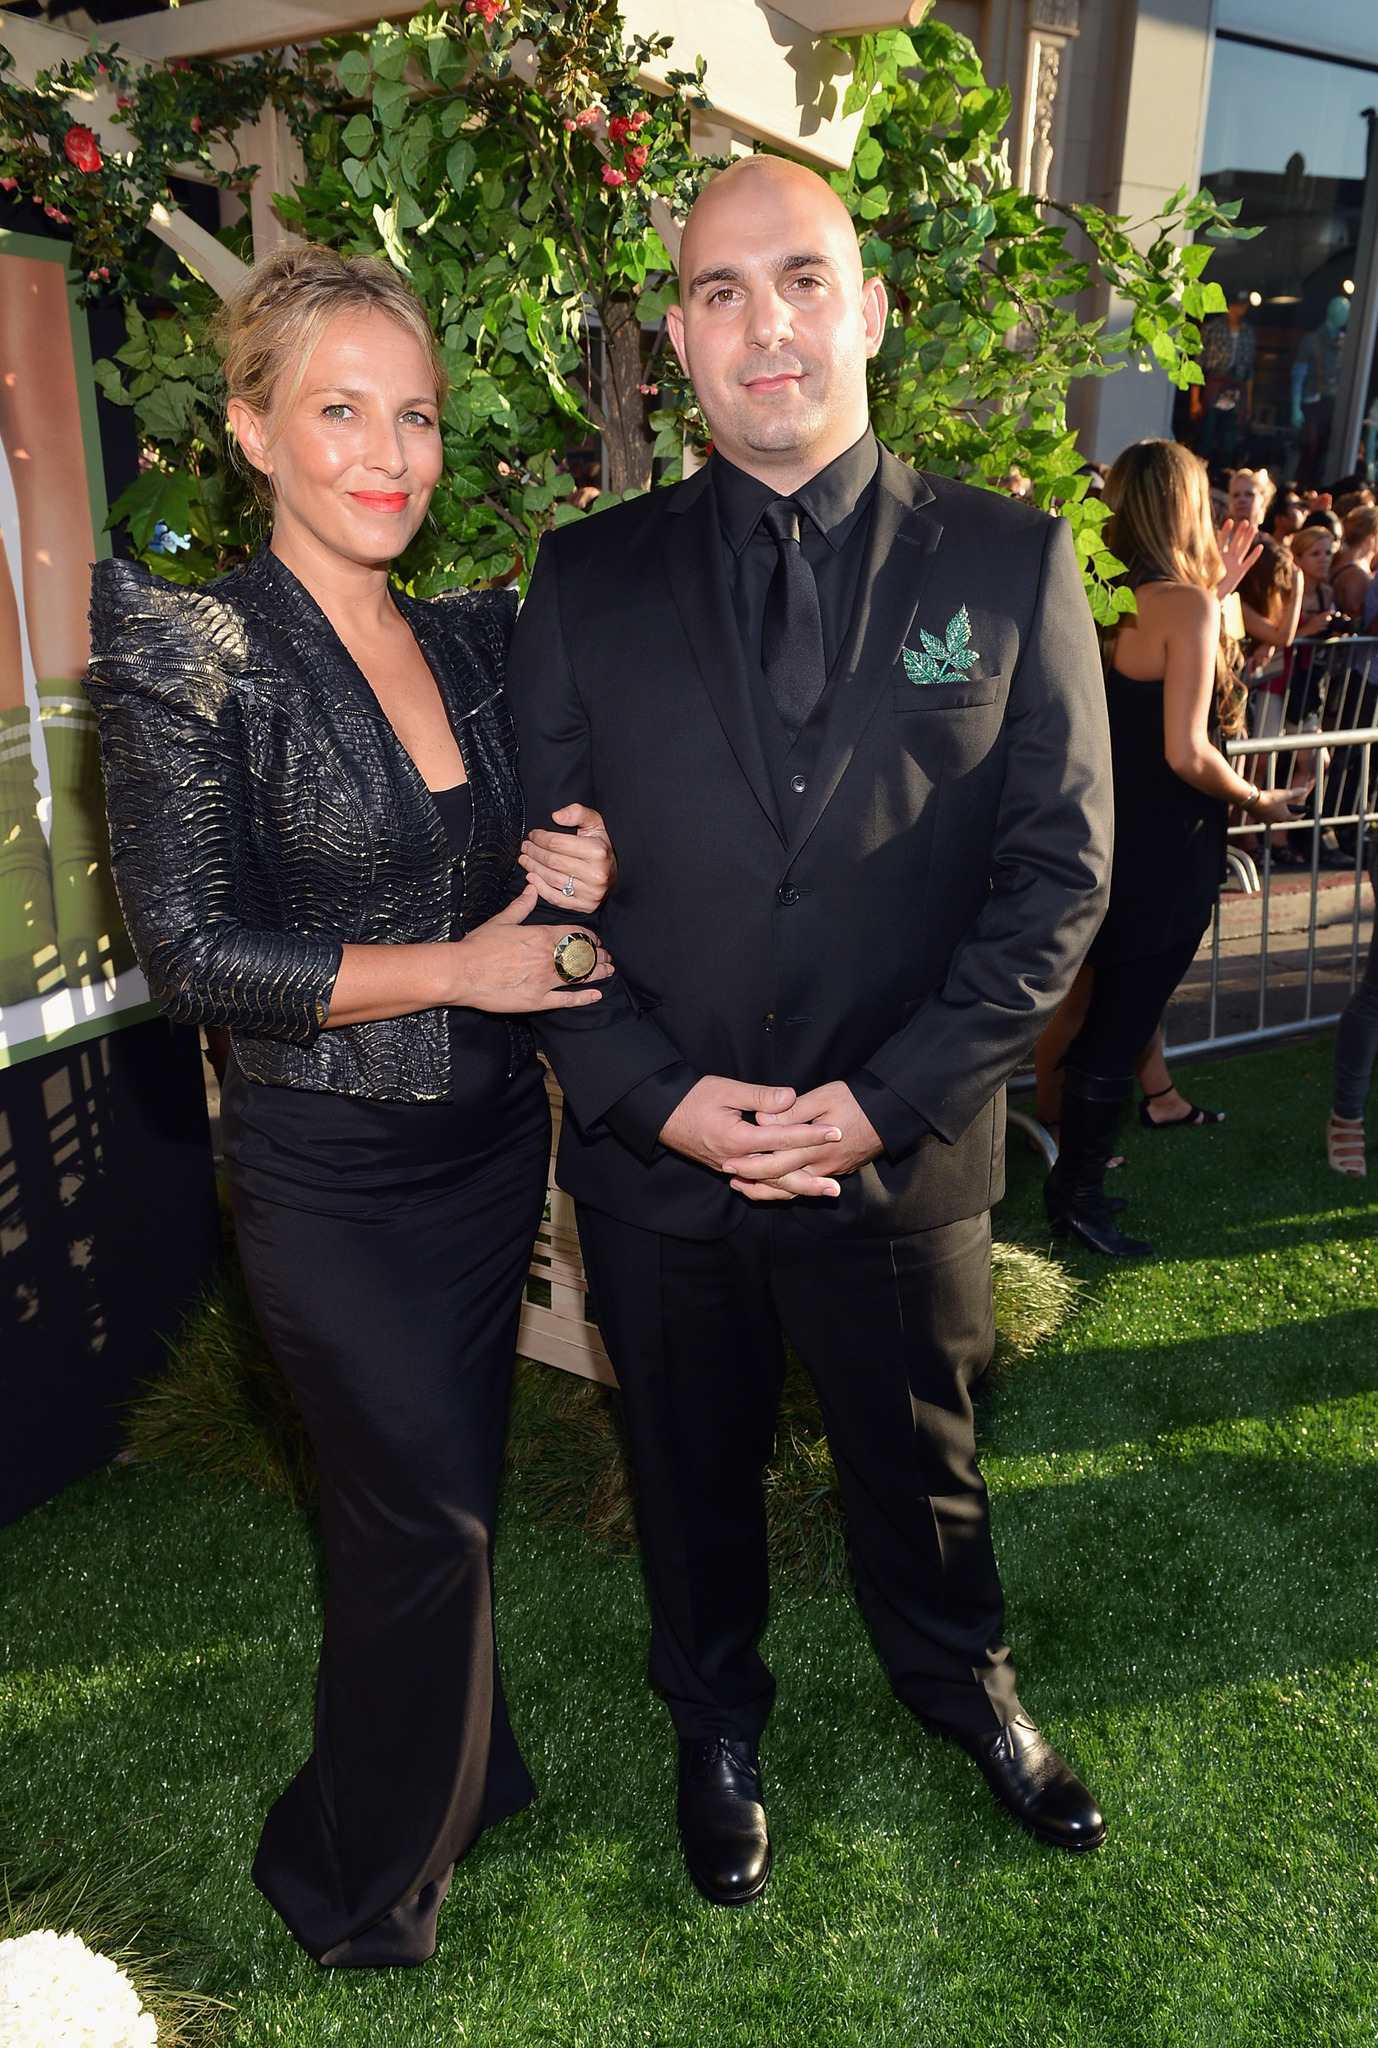 Ahmet Zappa and Shana Muldoon at an event for The Odd Life of Timothy Green (2012)